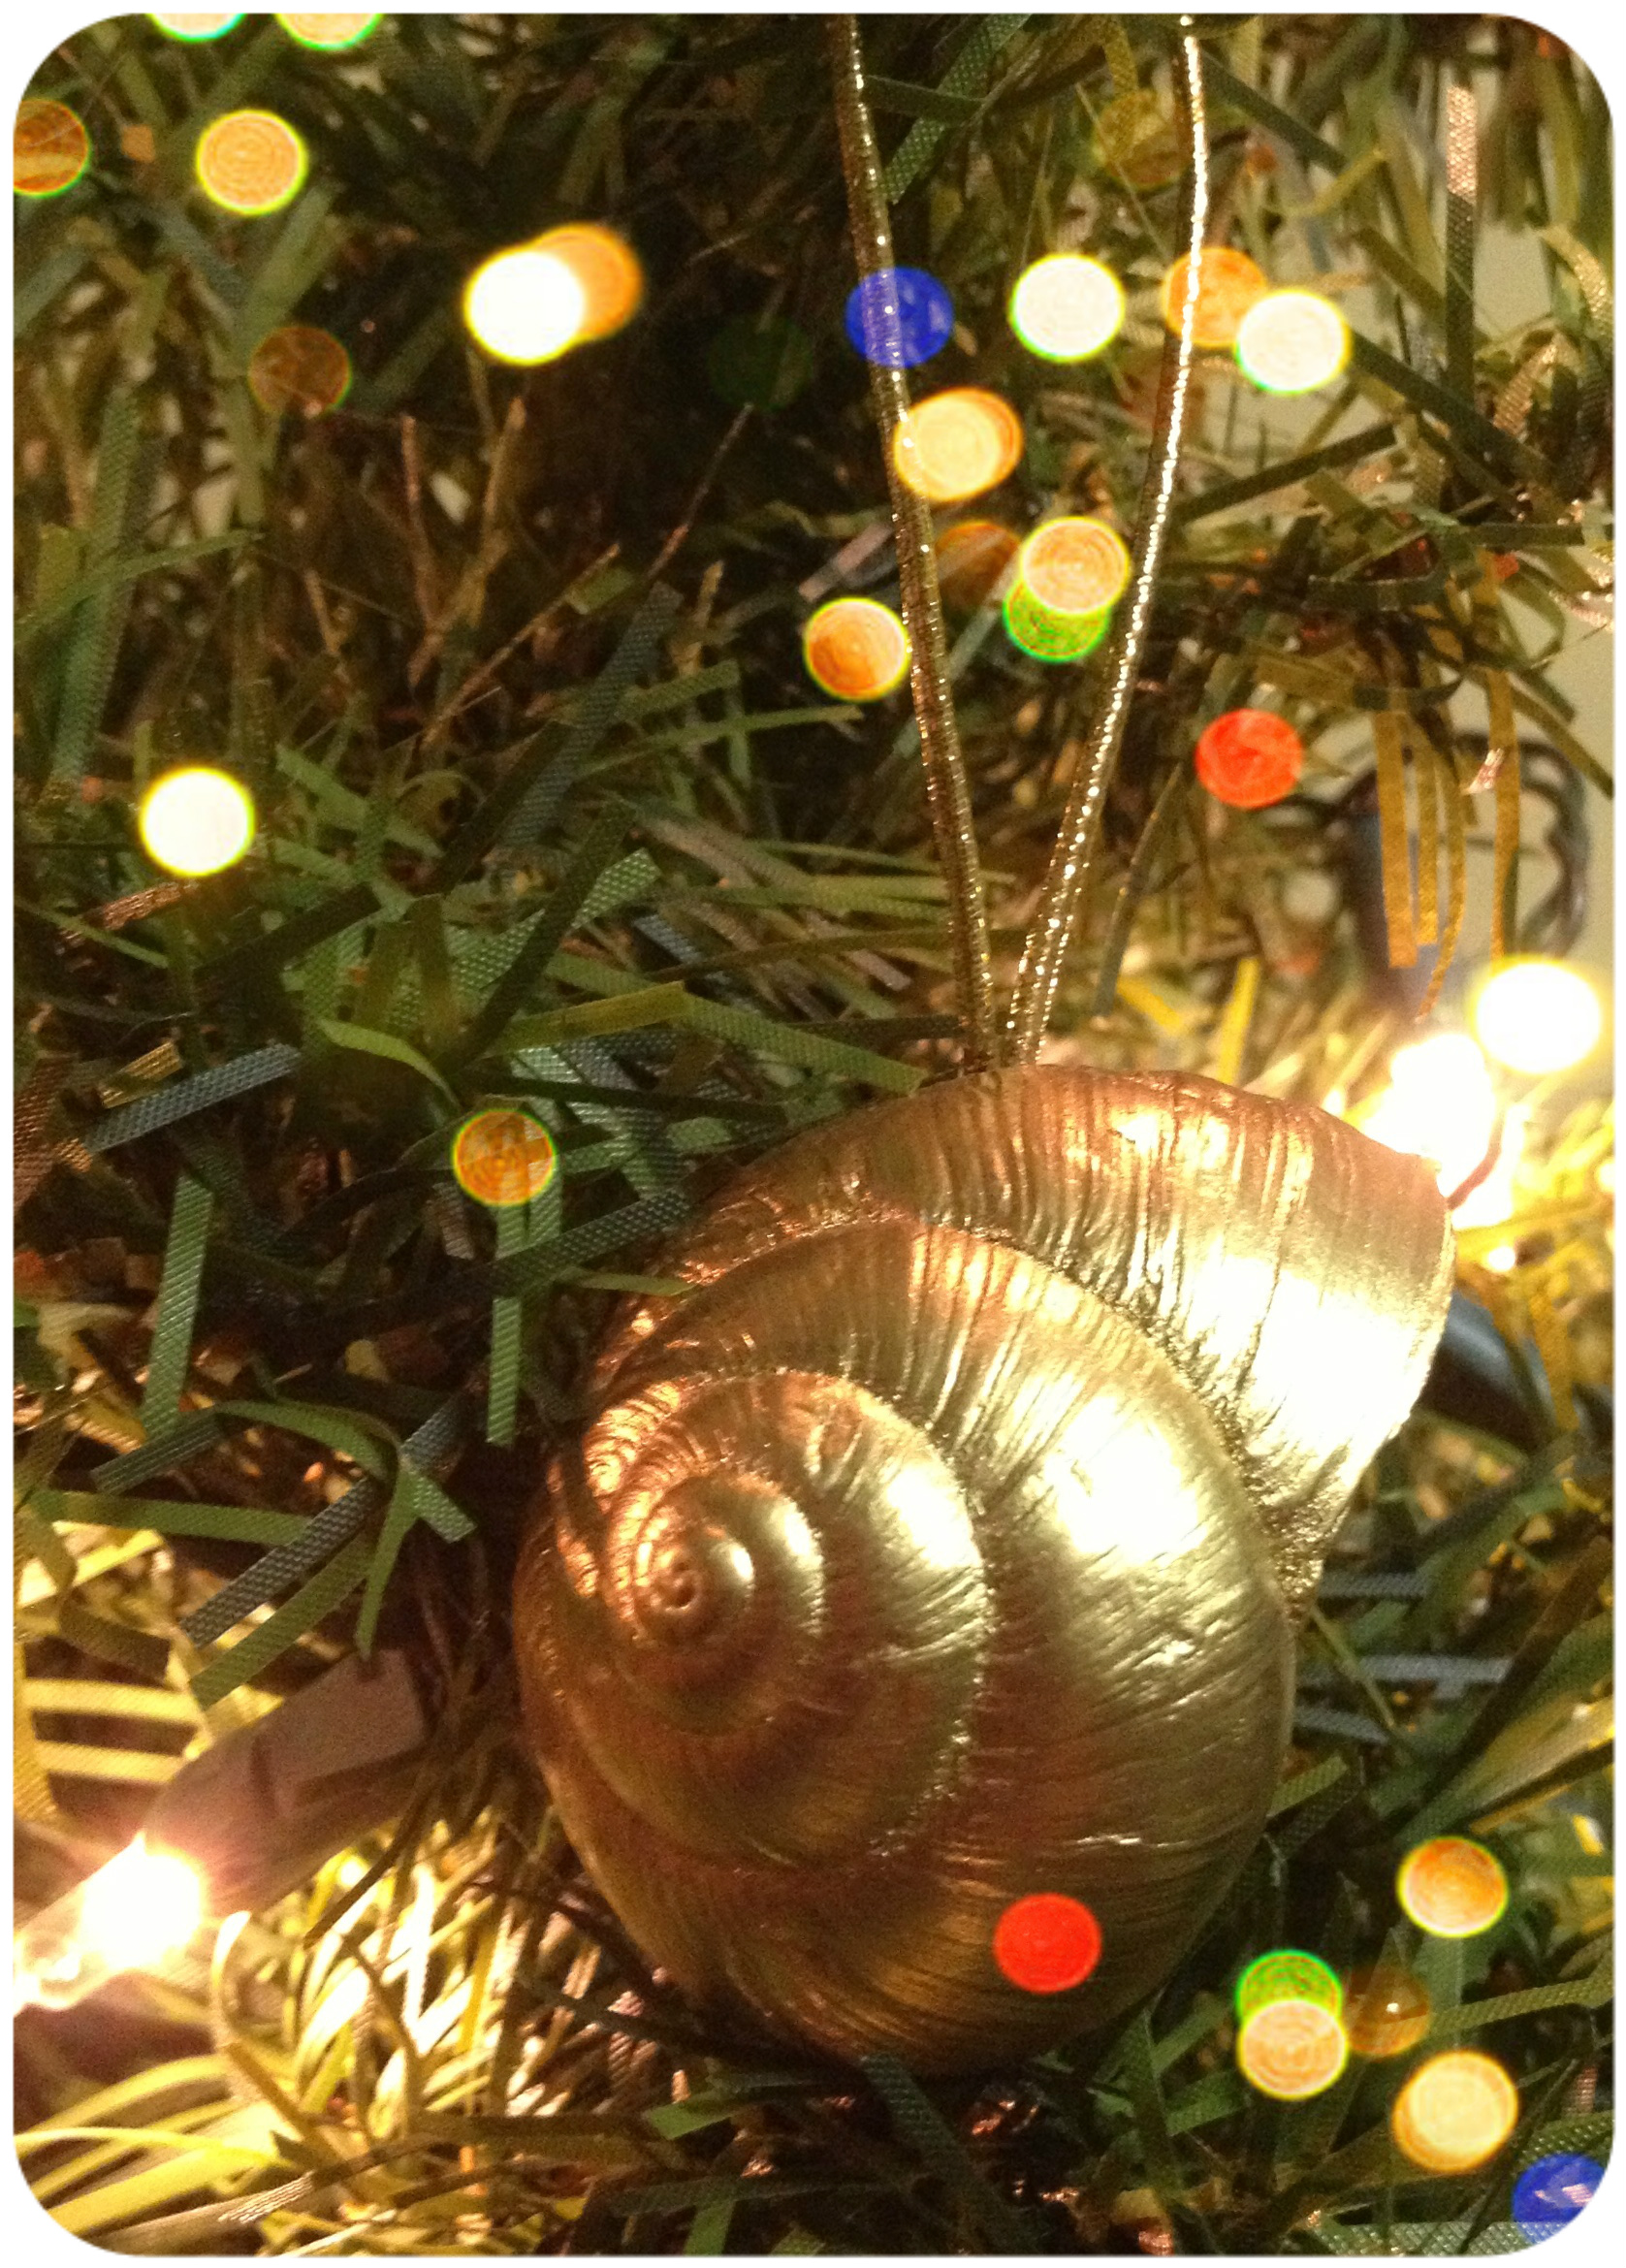 Nautical tree ornaments - These